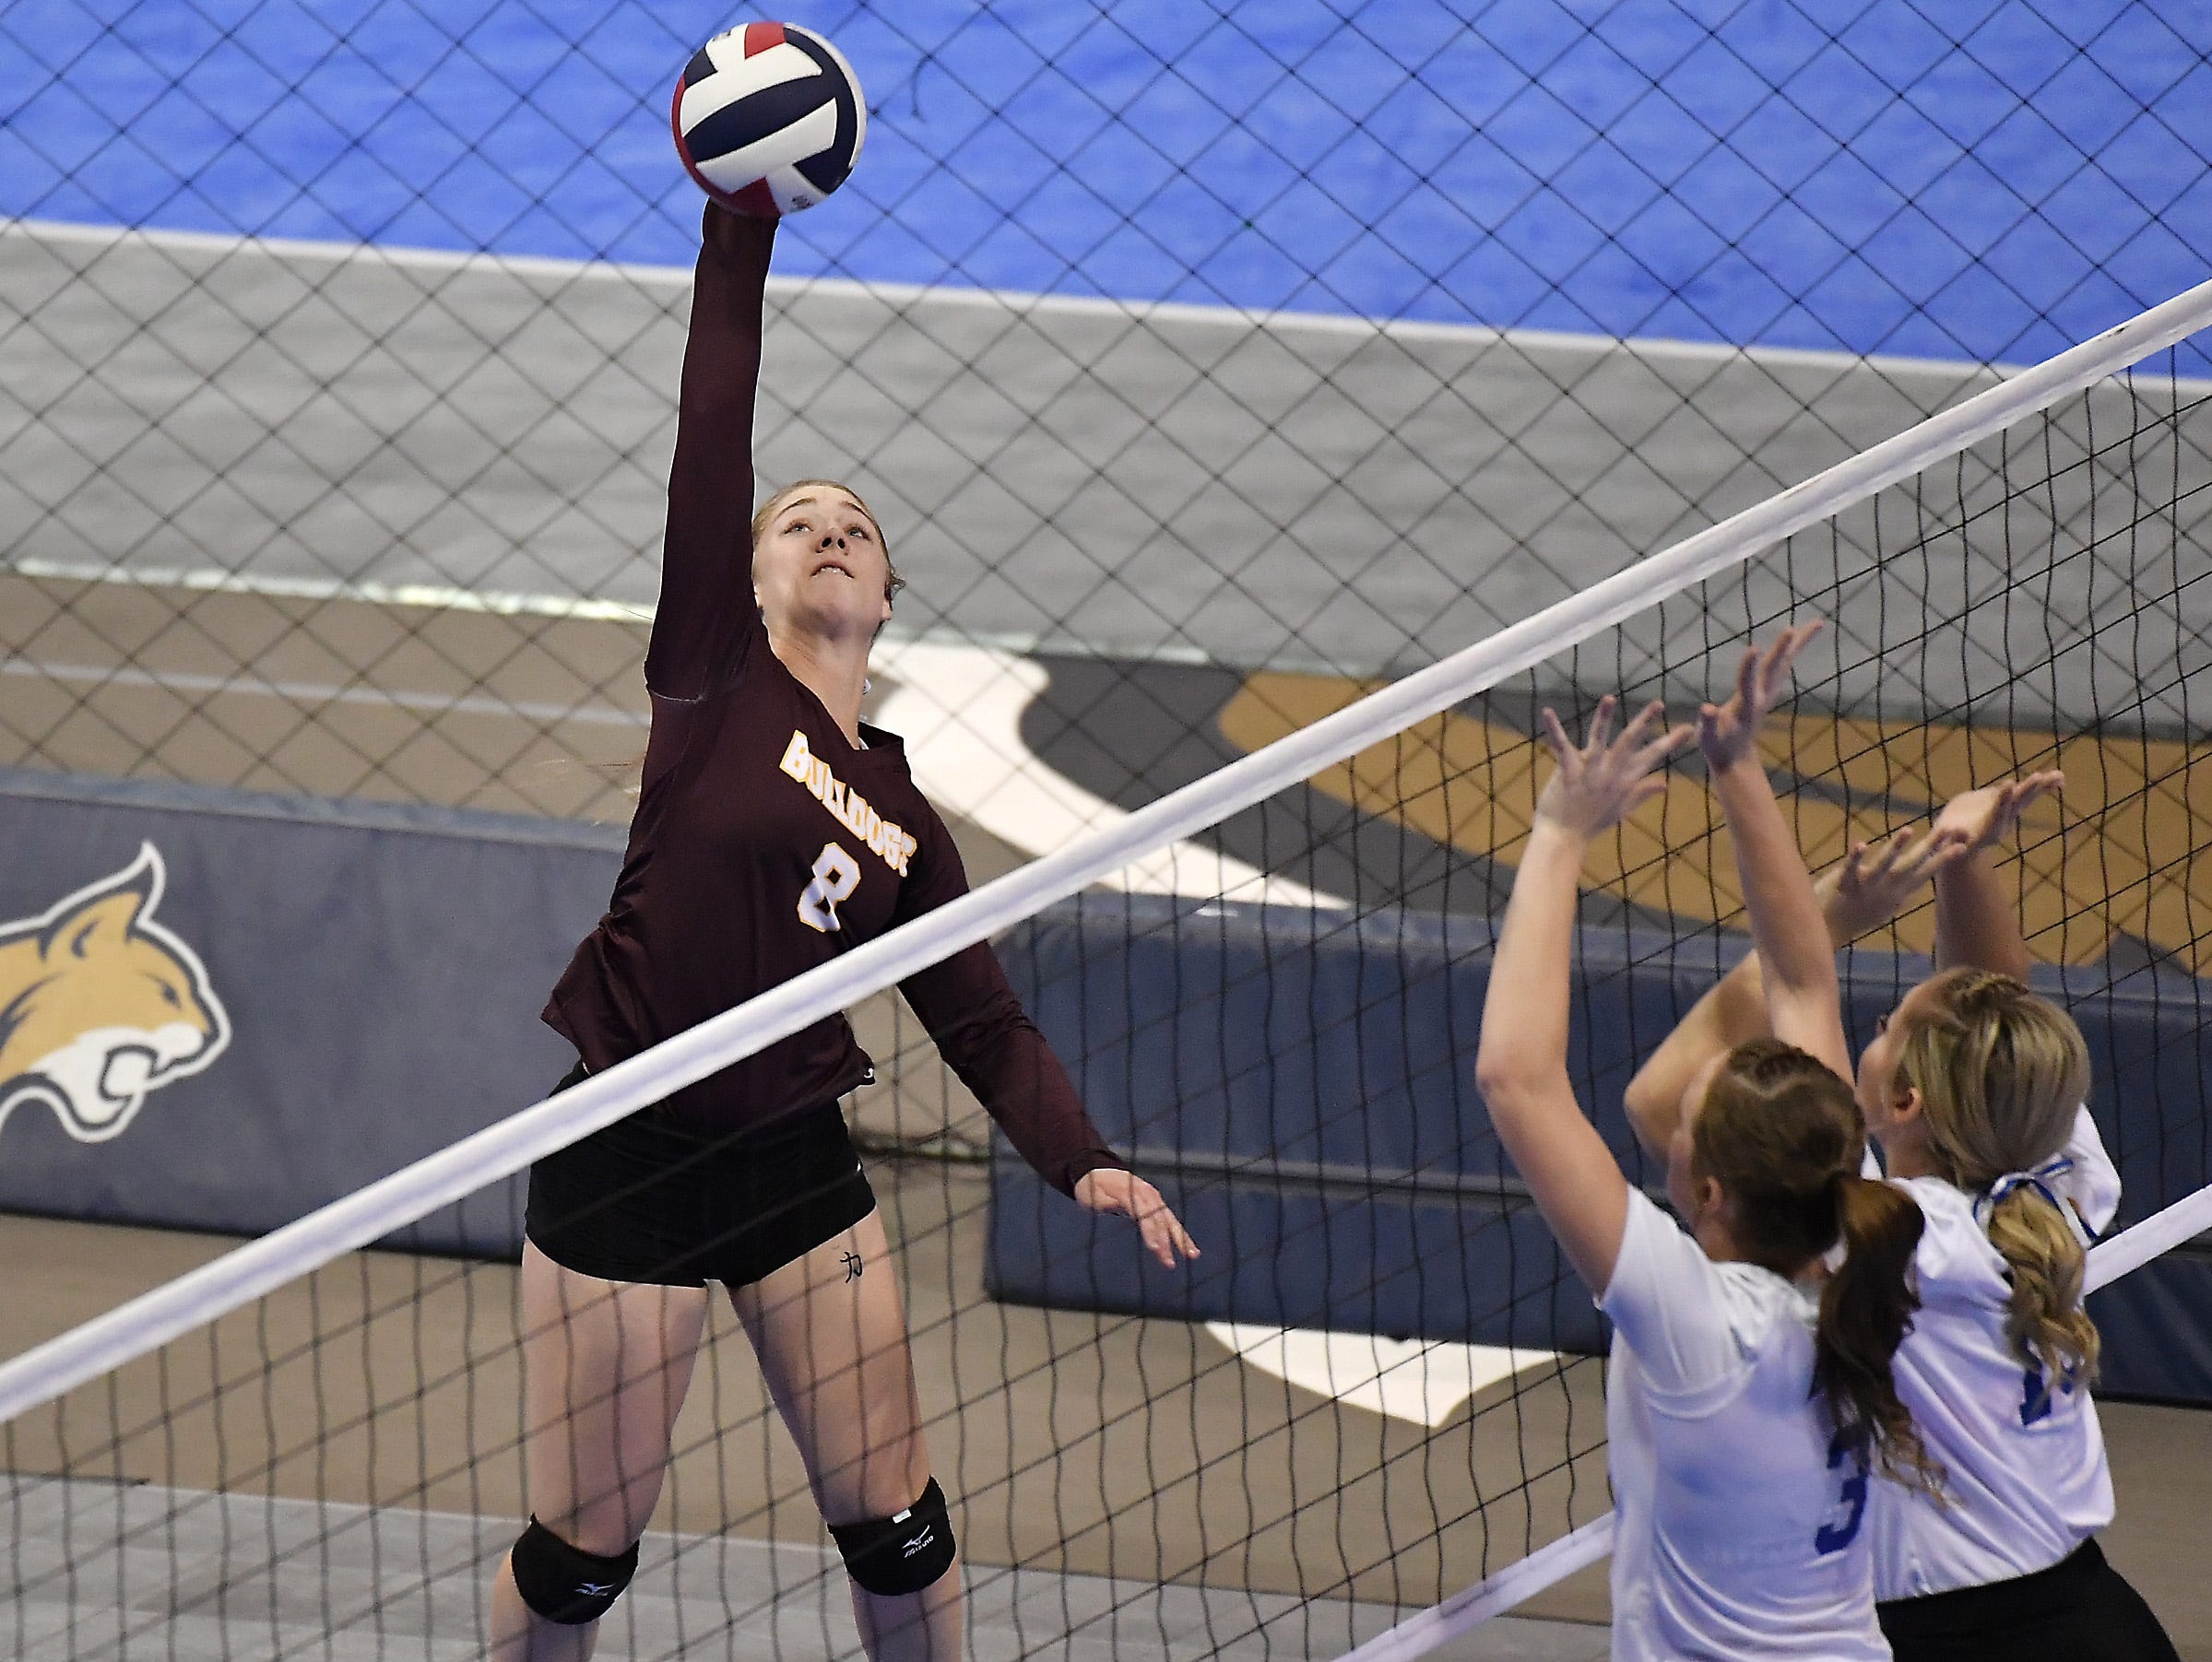 Michaela Gunderson of Choteau tallies a kill on Fairfield at the All-Class State Volleyball Tournament at the Brick Breeden Fieldhouse in Bozeman Friday.